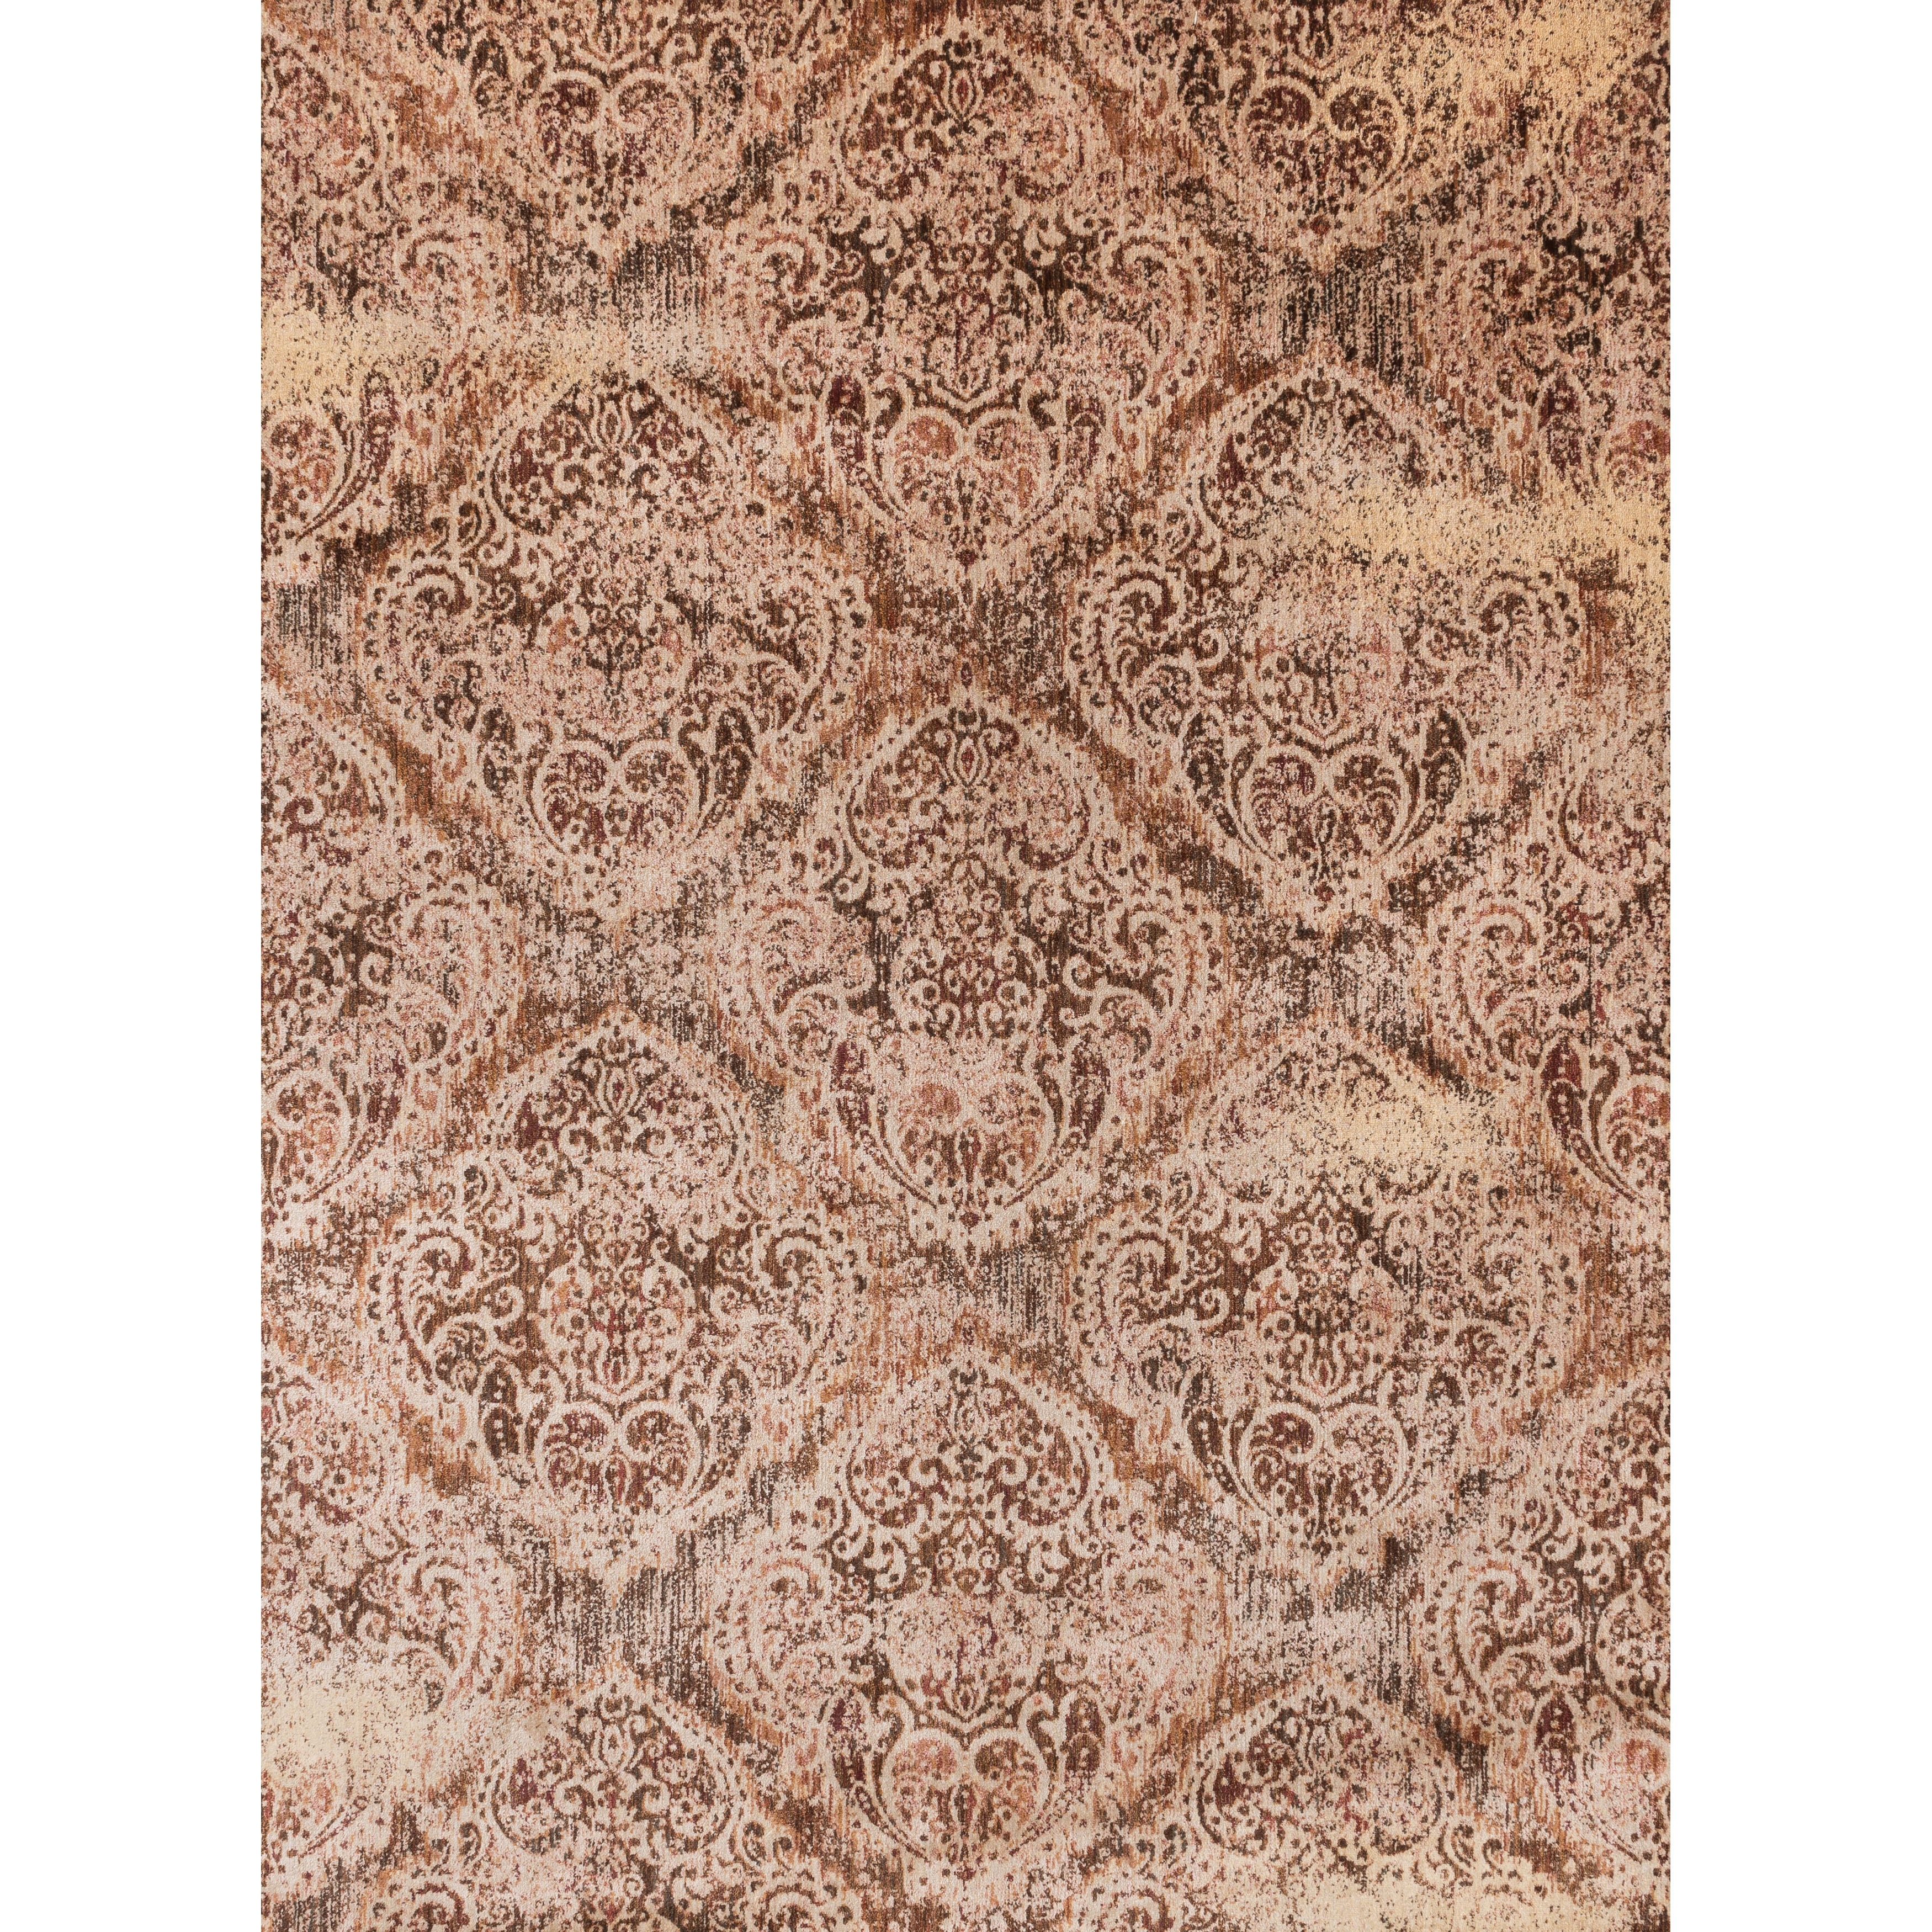 Traditional Brown/ Antique Ivory Distressed Rug - 67 x 92 (Tobacco/Ivory - 67 x 92)